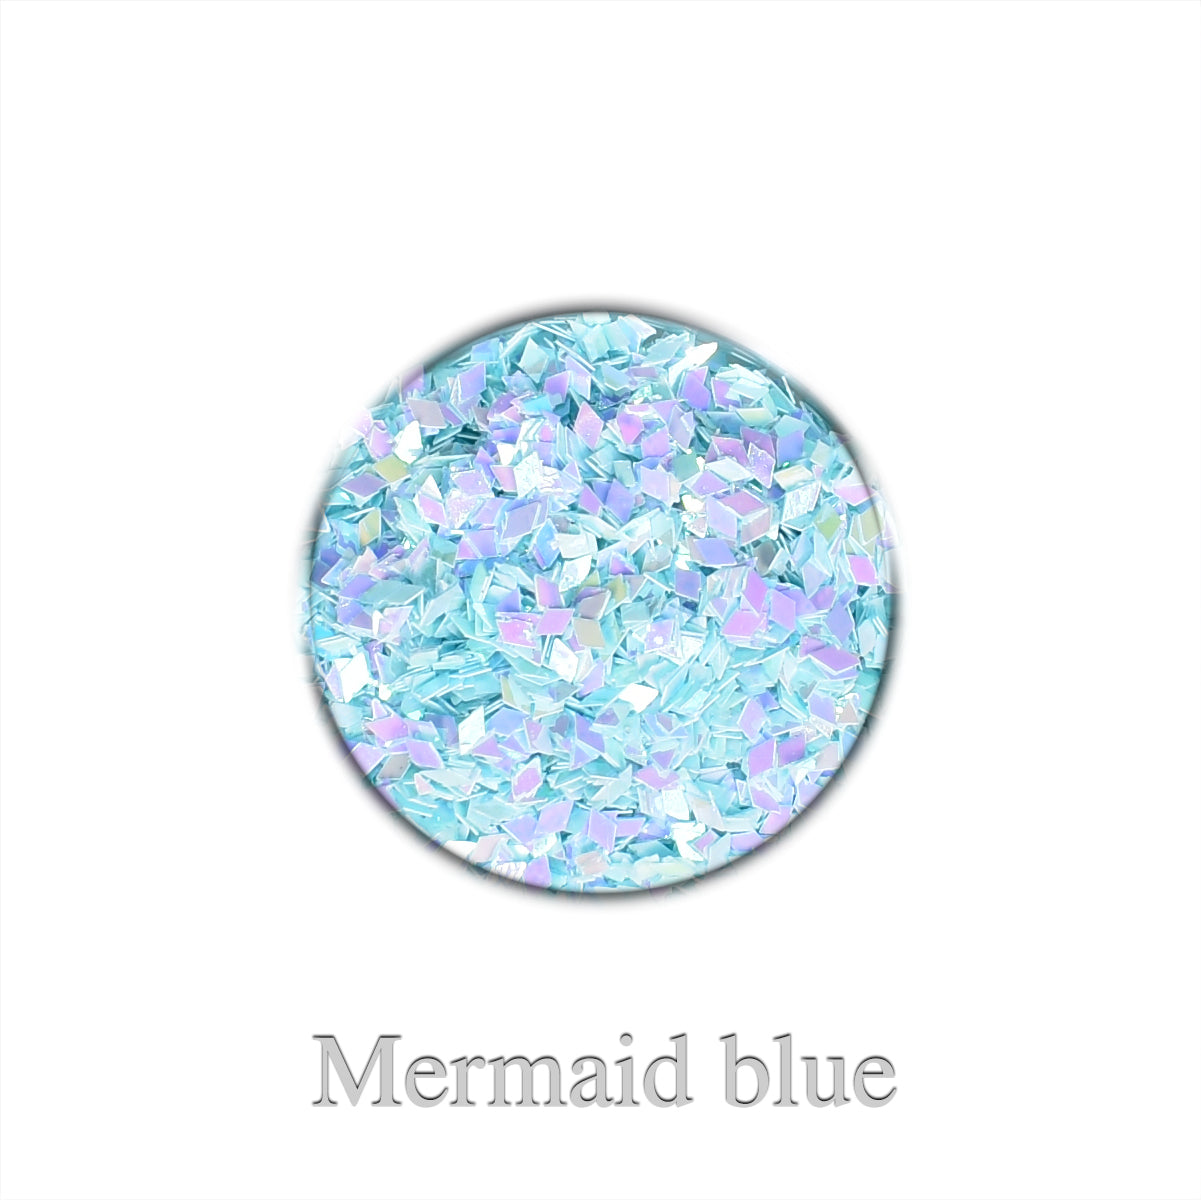 Chrome Rhombus Mini - Mermaid blue